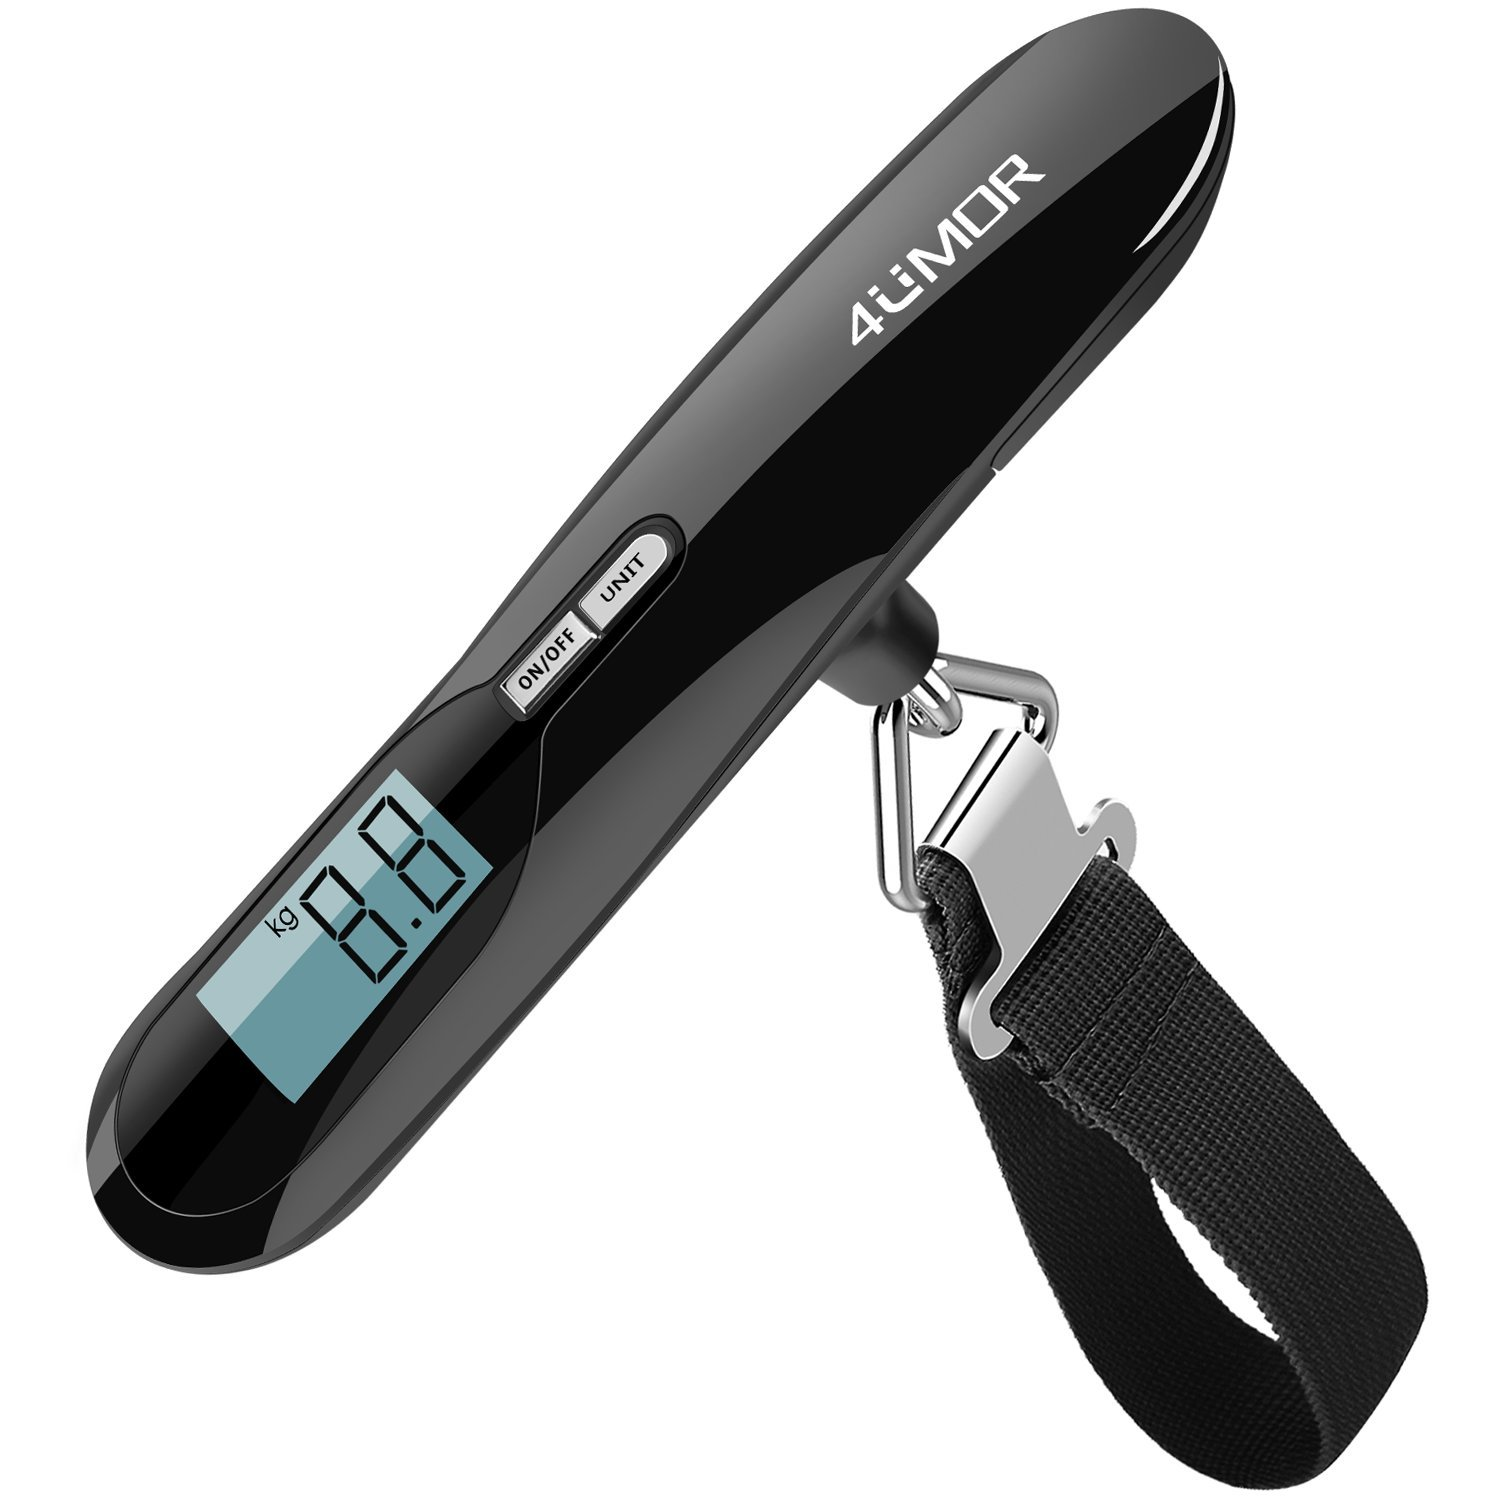 Luggage Scale, 4UMOR Portable Digital Hanging Luggage Scale 110 lb/ 50 KG Capacity